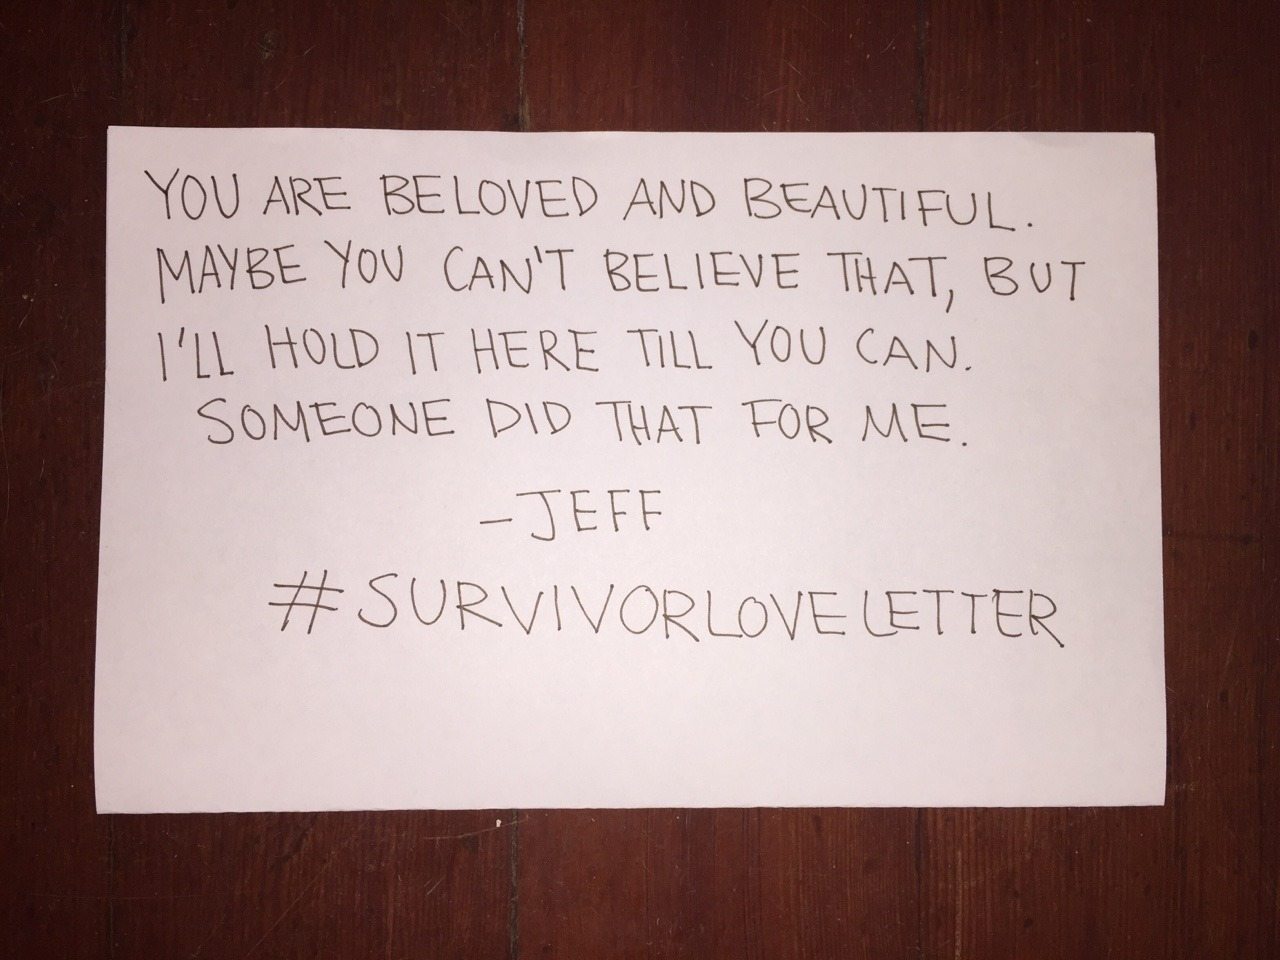 You are beloved and beautiful. Maybe you can't believe that, but I'll hold it here till you can. Someone did that for me.  -Jeff  #SURVIVORLOVELETTER